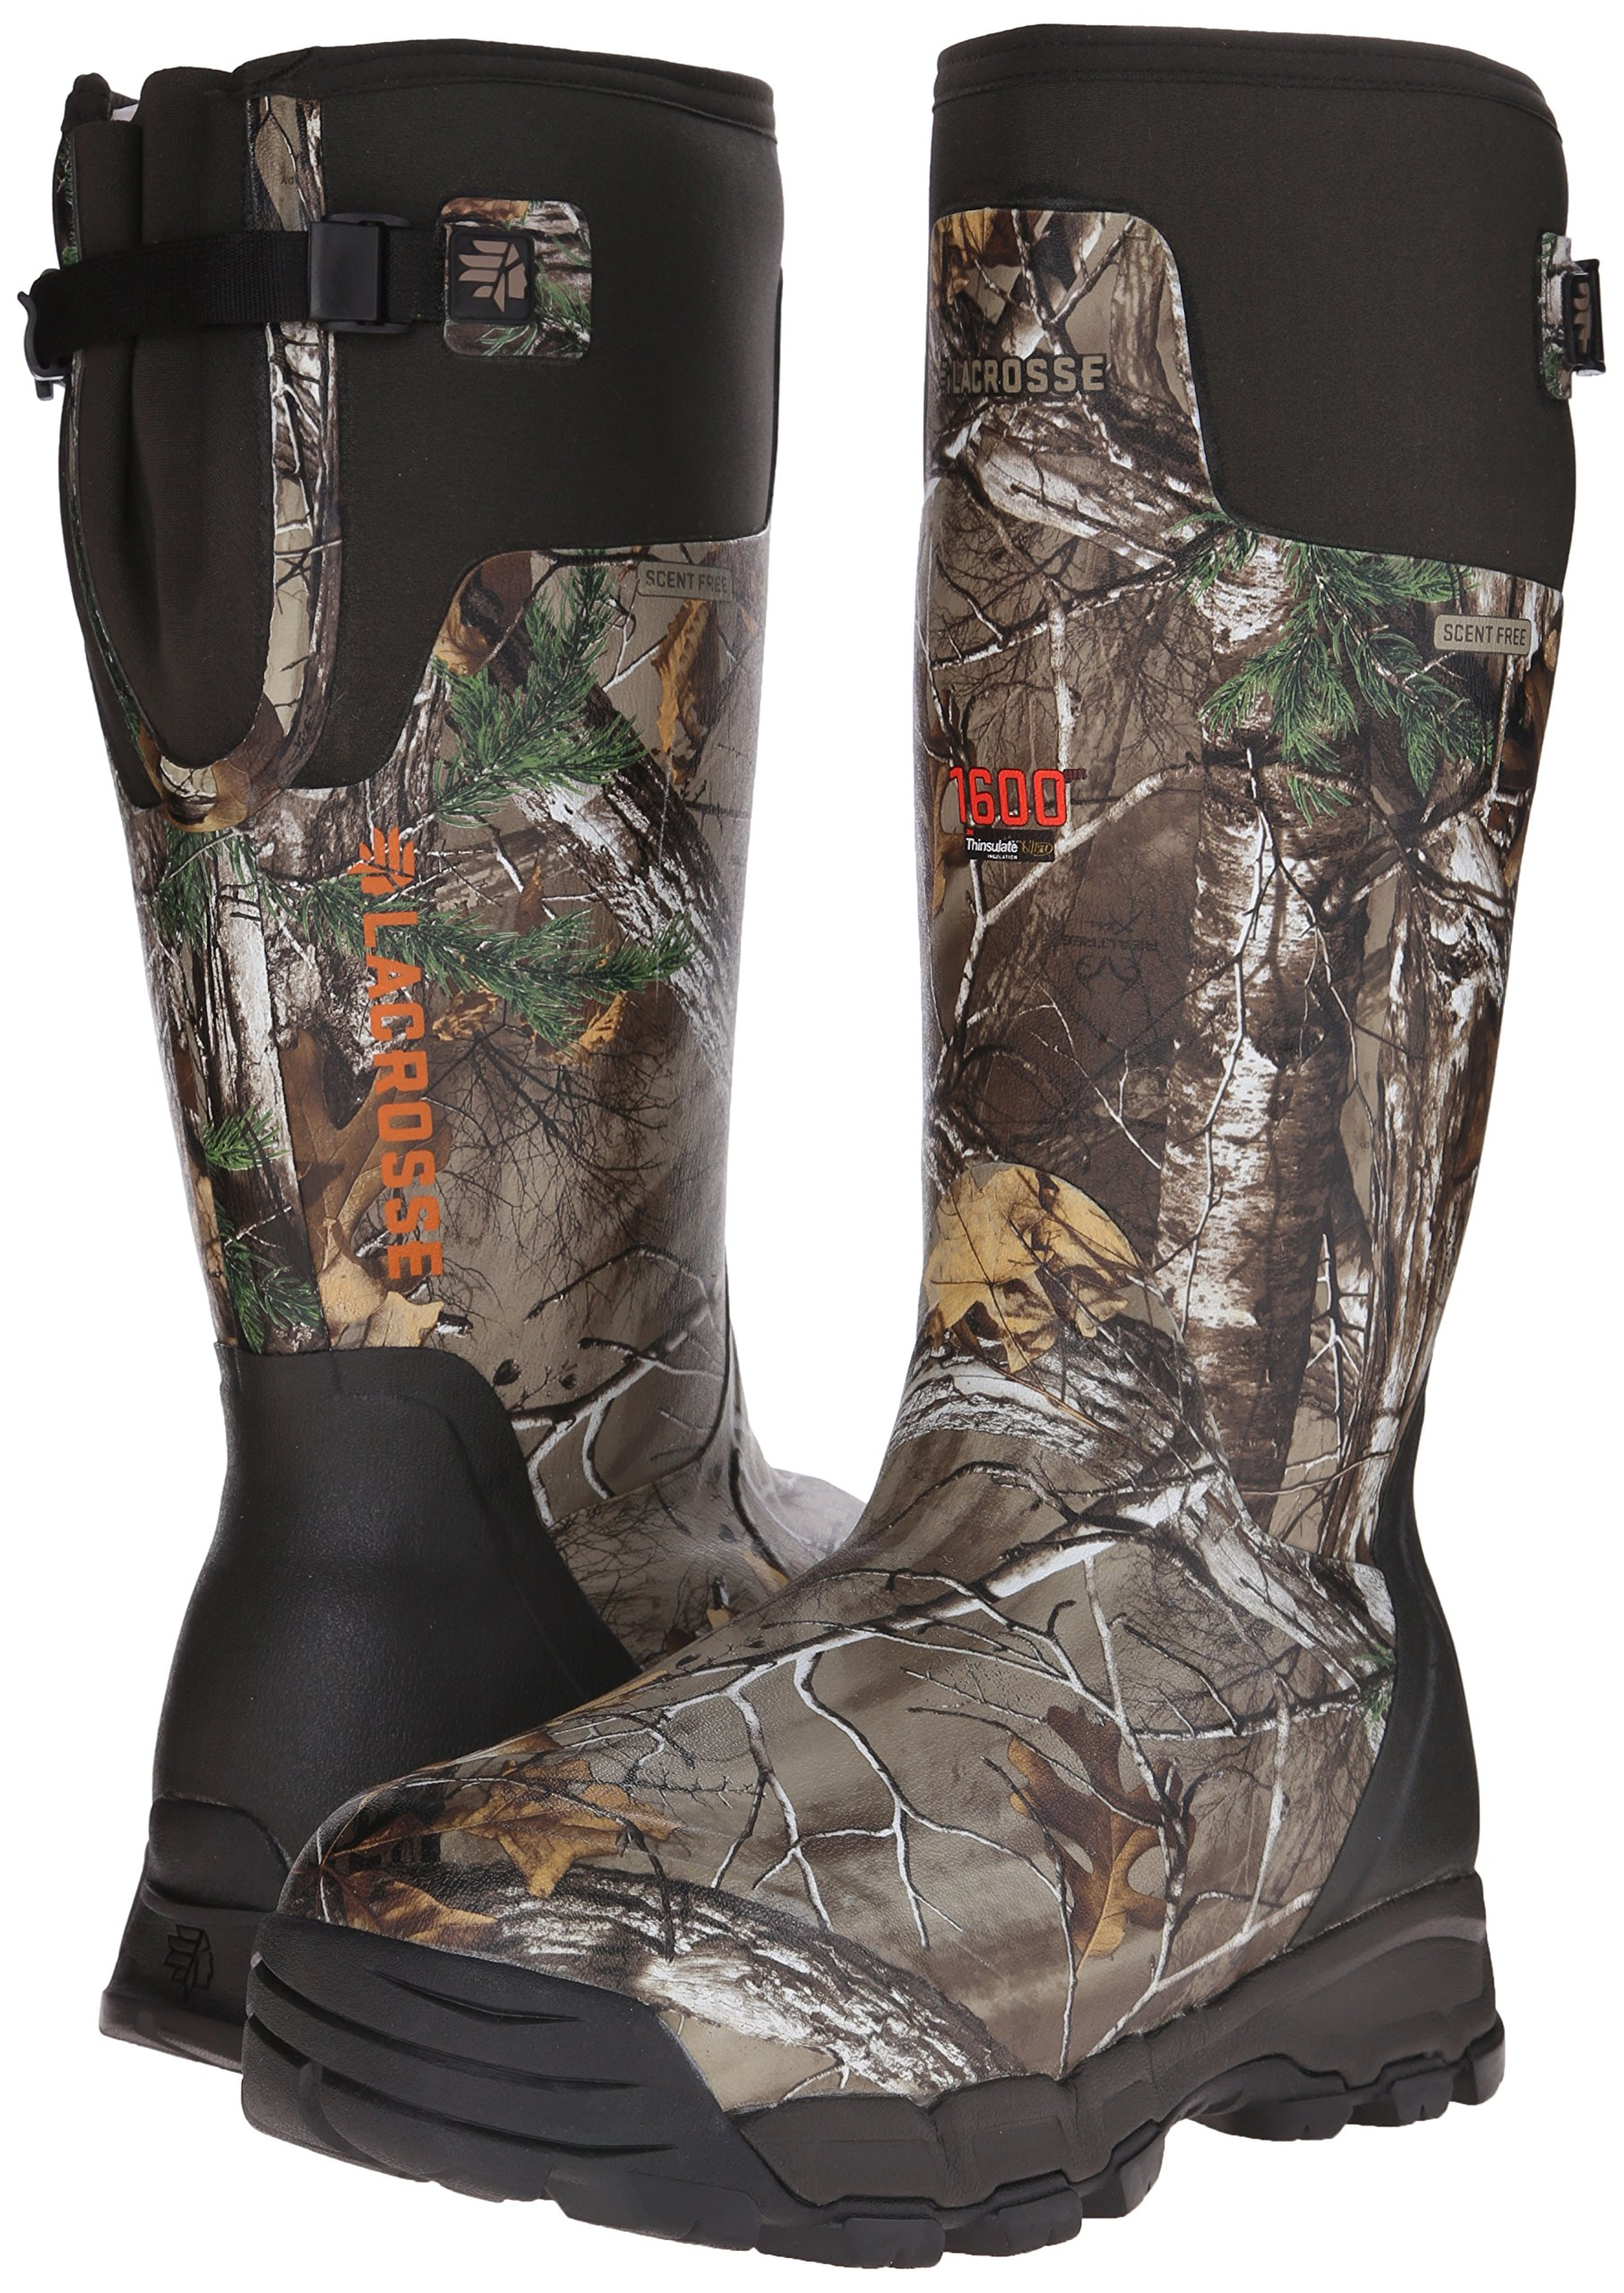 "LaCrosse Men's Alphaburly Pro 18"" 1600G Hunting Boot,Realtree Xtra,11 M US by Lacrosse (Image #6)"